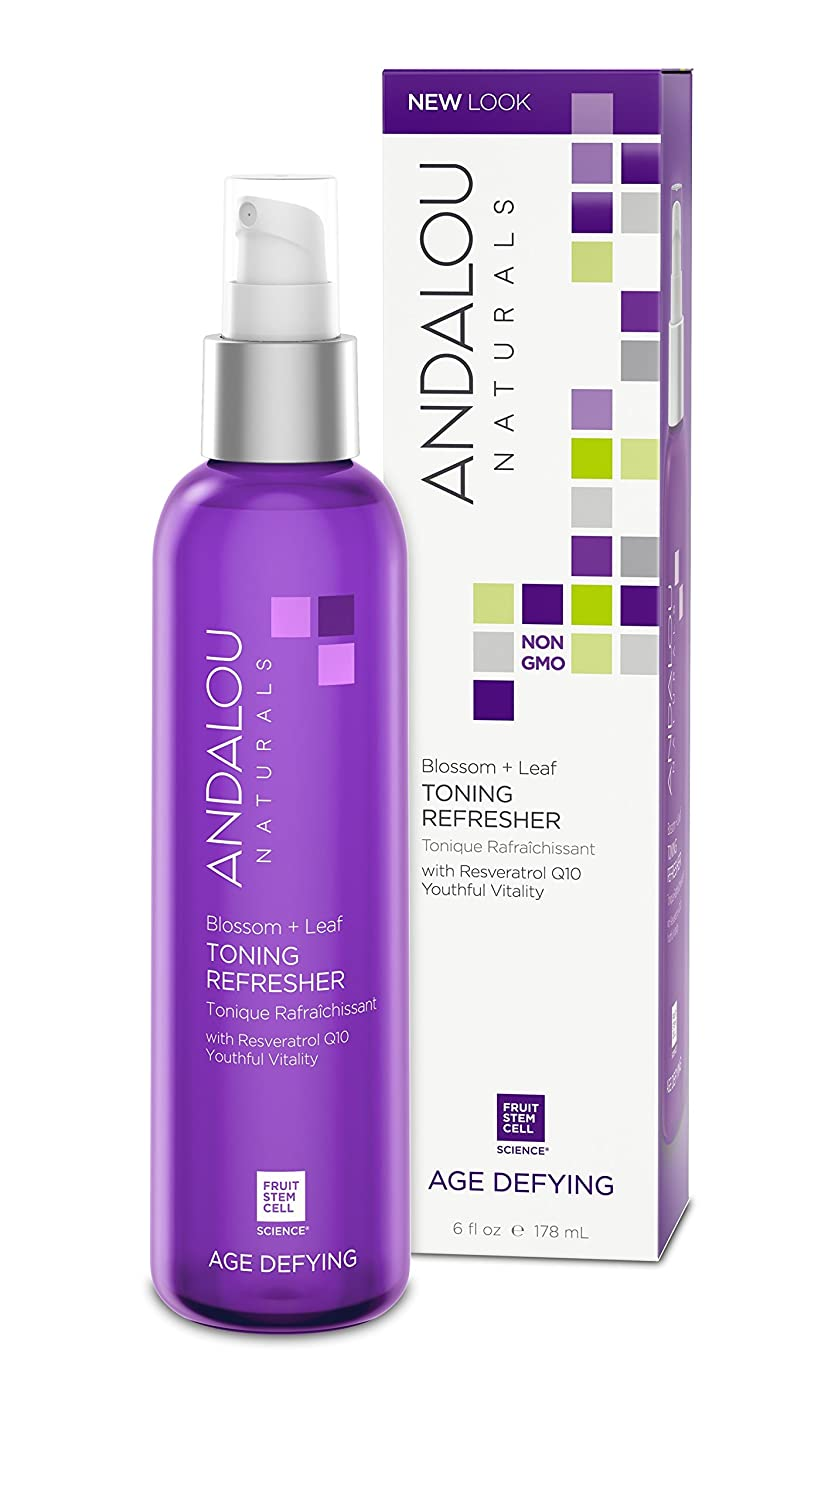 Andalou Naturals Blossom + Leaf Toning Refresher, 6 oz, Balances pH Levels, Hydrates, and Soothes Irritated, Dry Skin, Contains Aloe Vera, Geranium, and Orange Leaf